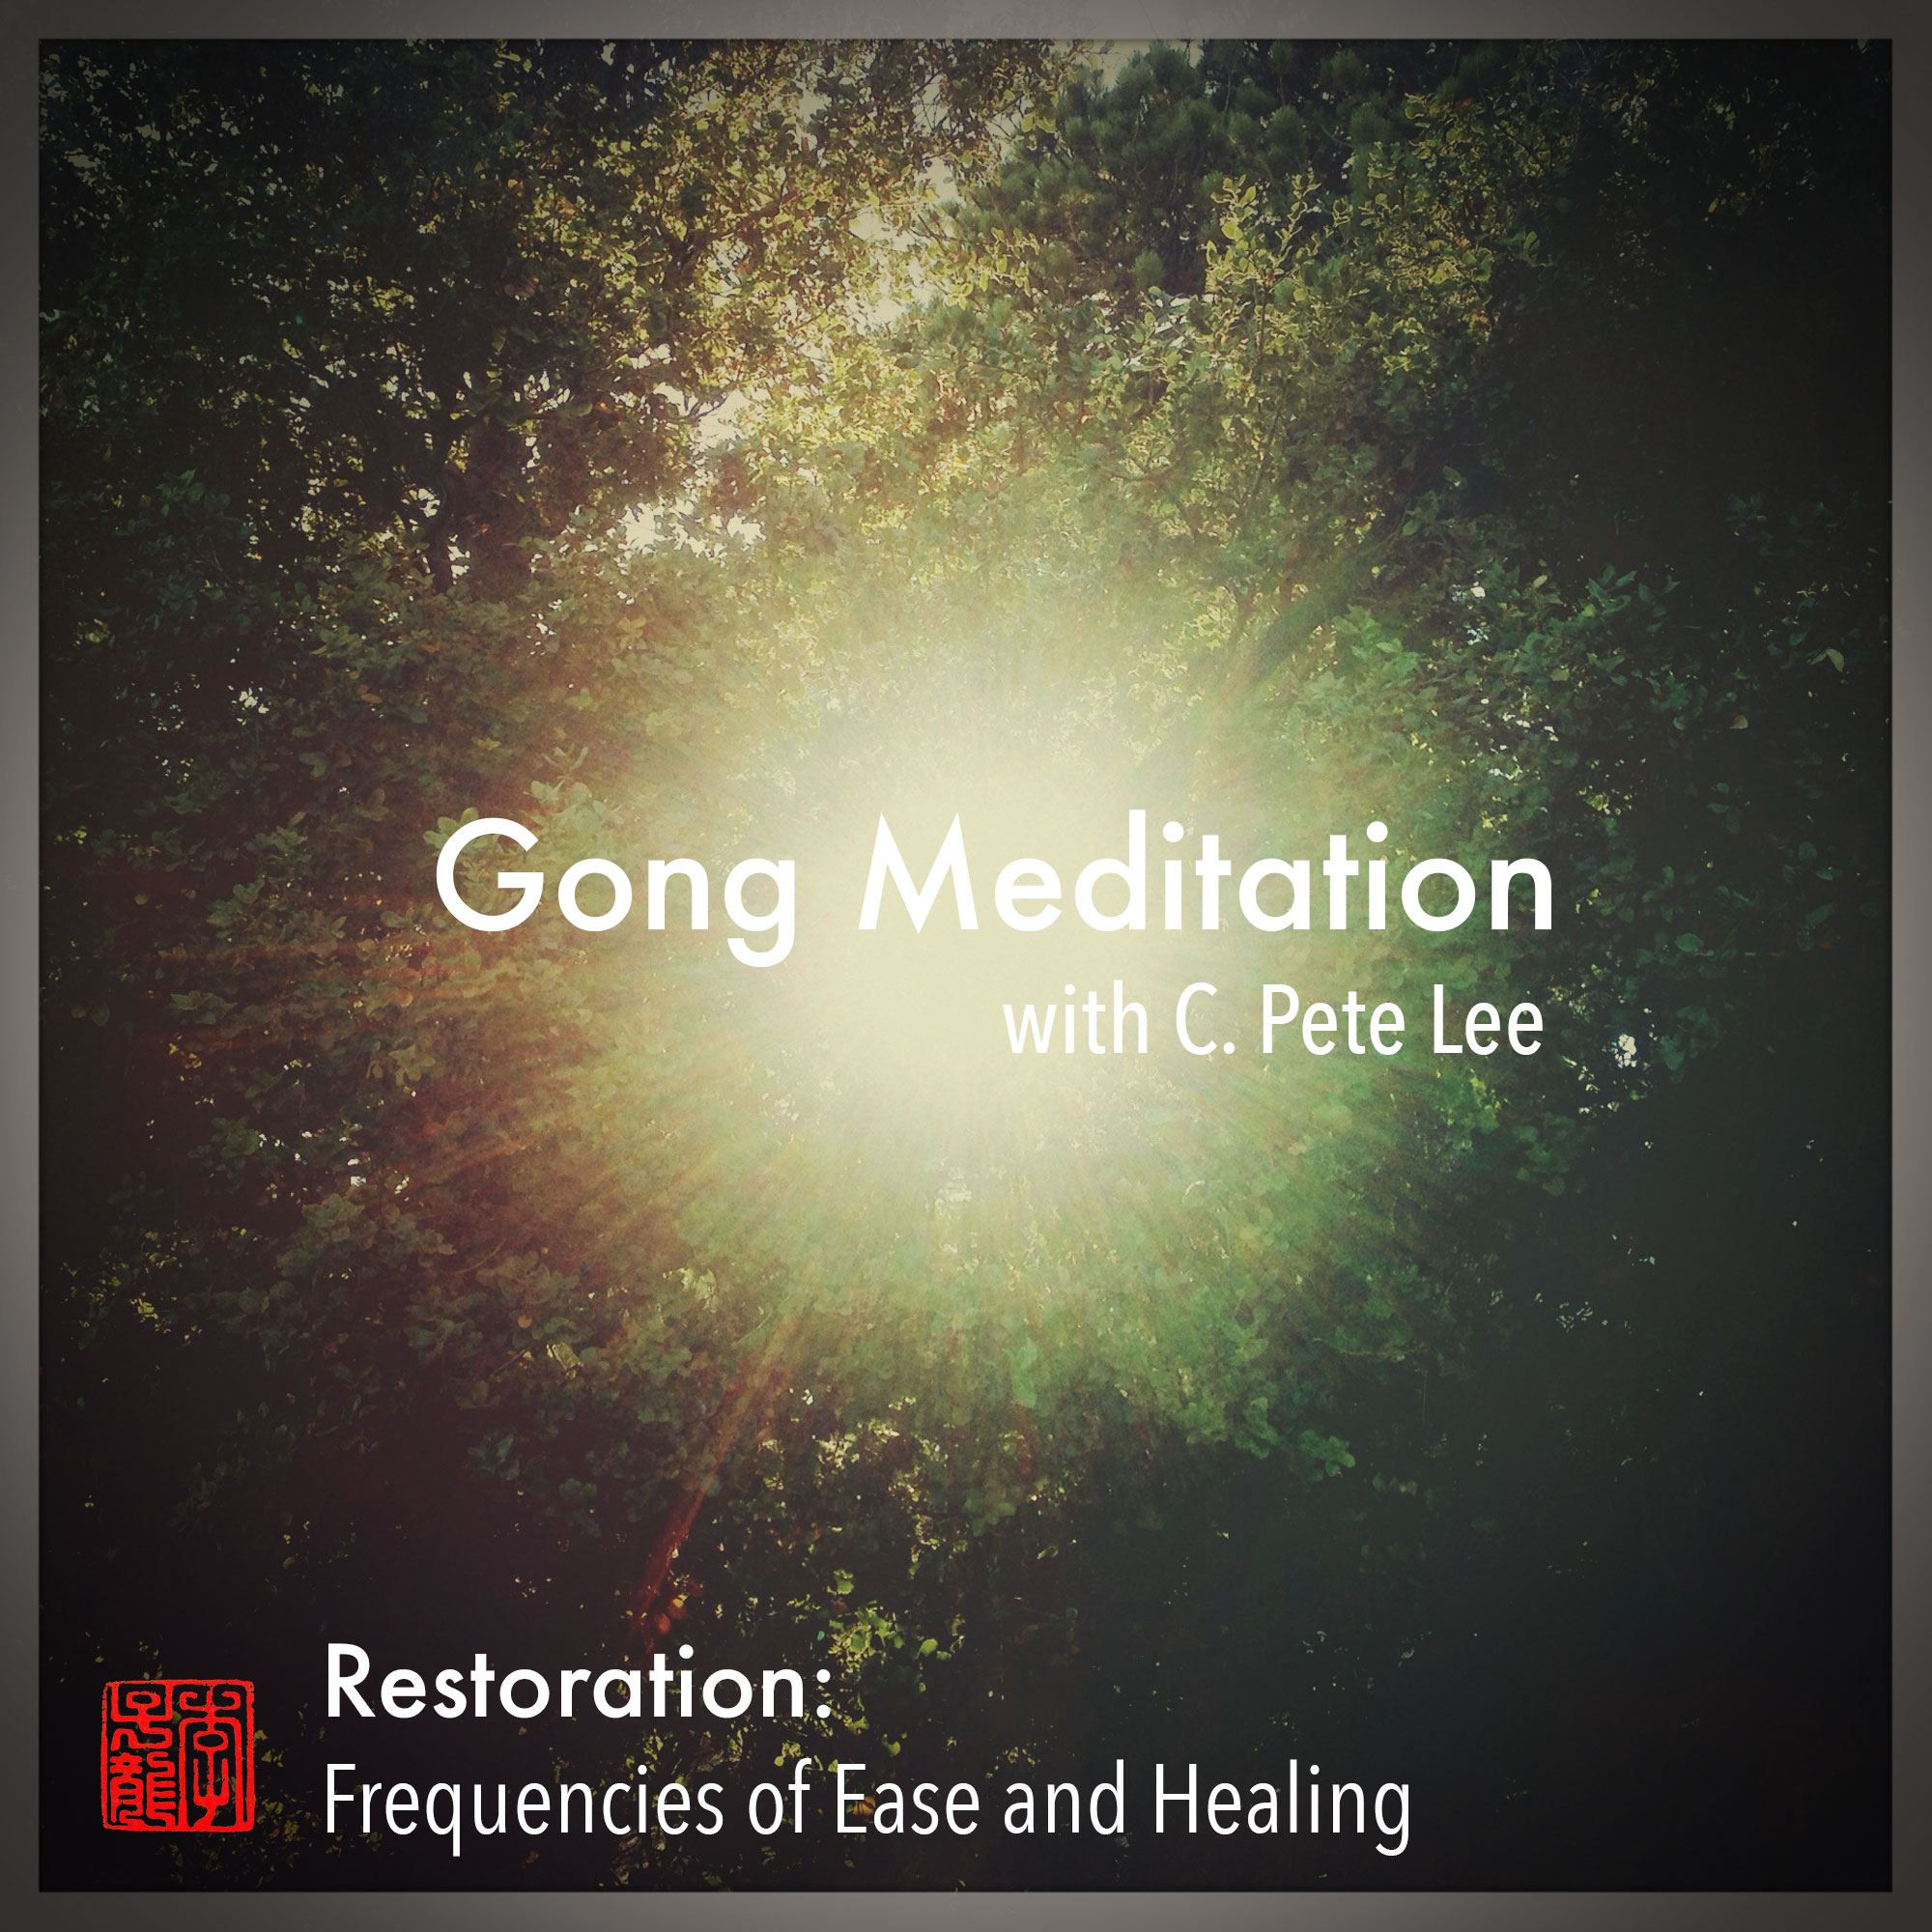 Gong Meditation CD cover